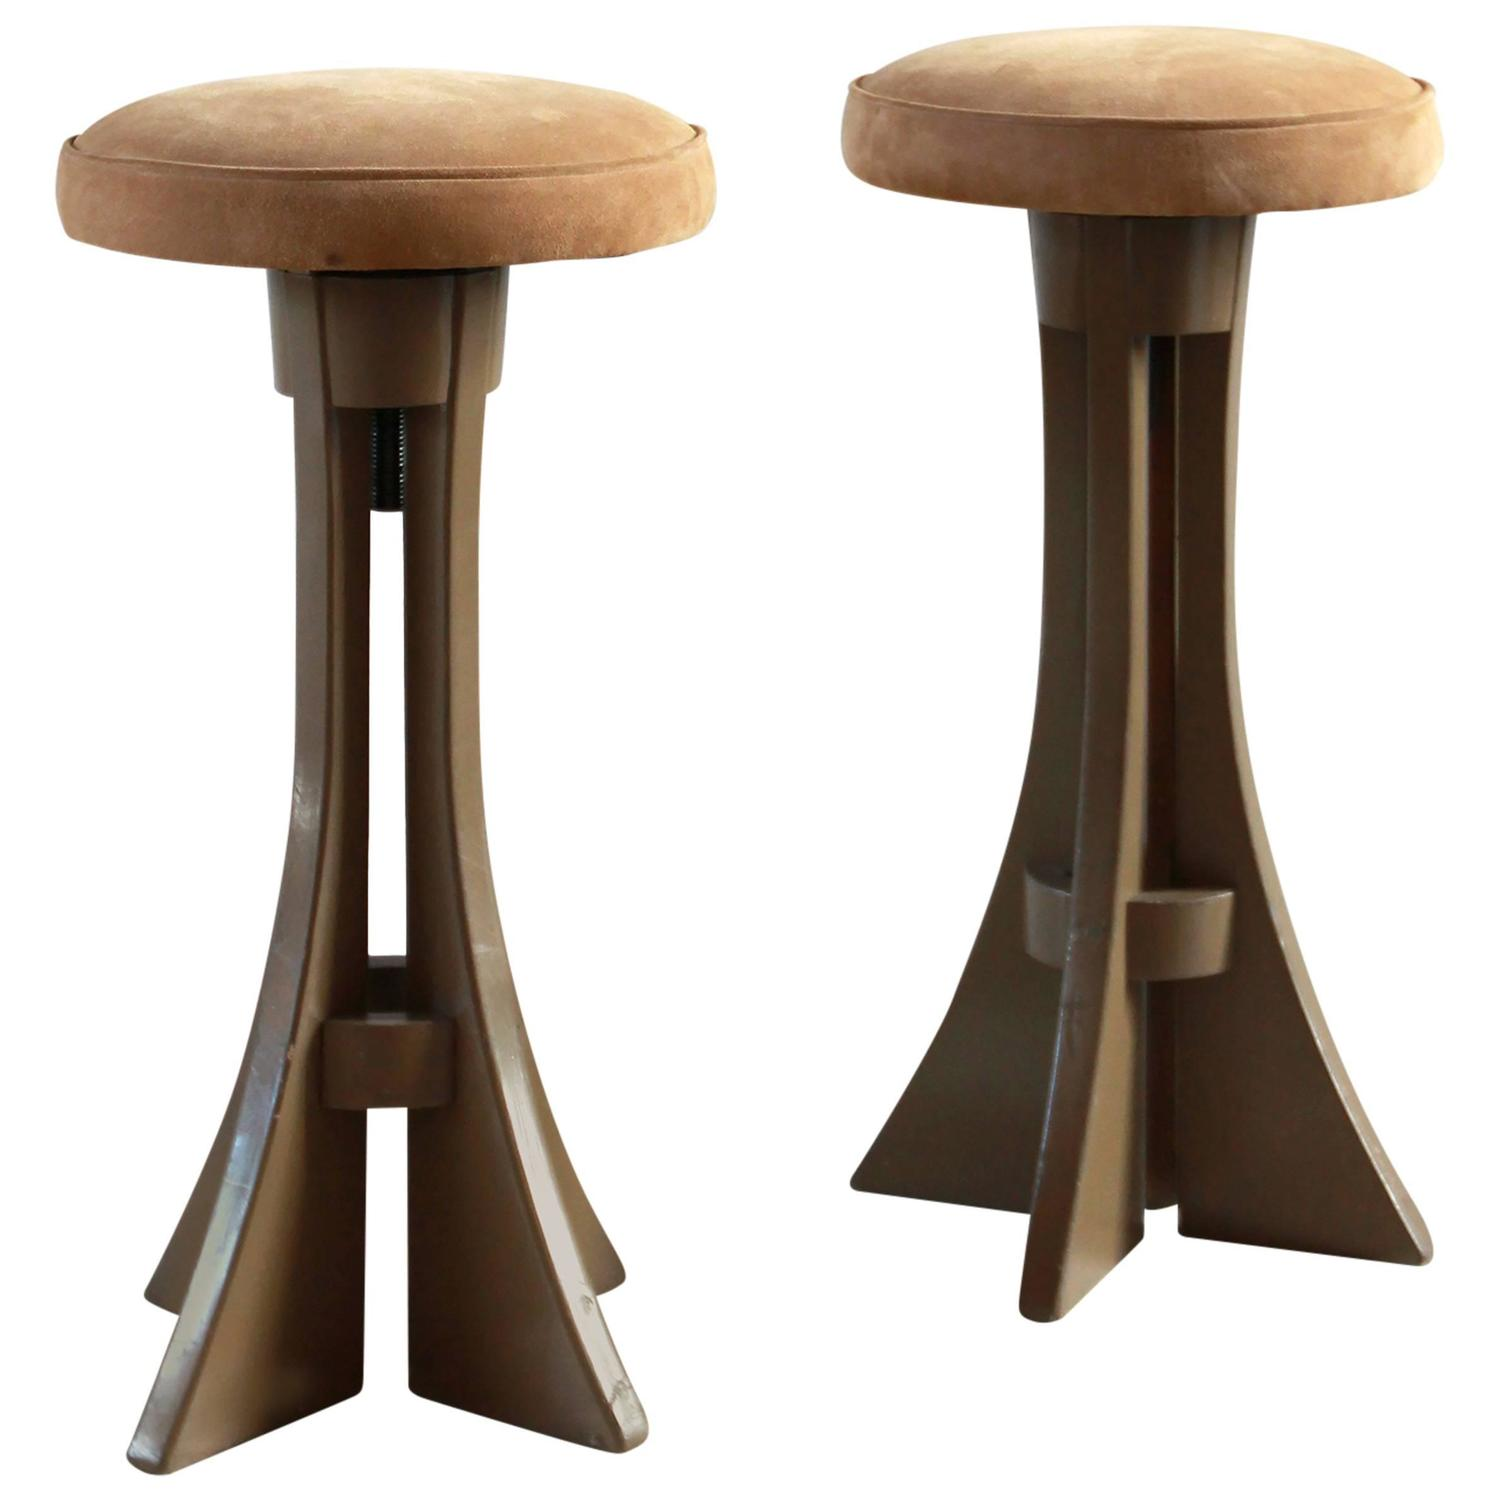 Brown Painted Stools With Suede Seat Cushion For Sale At